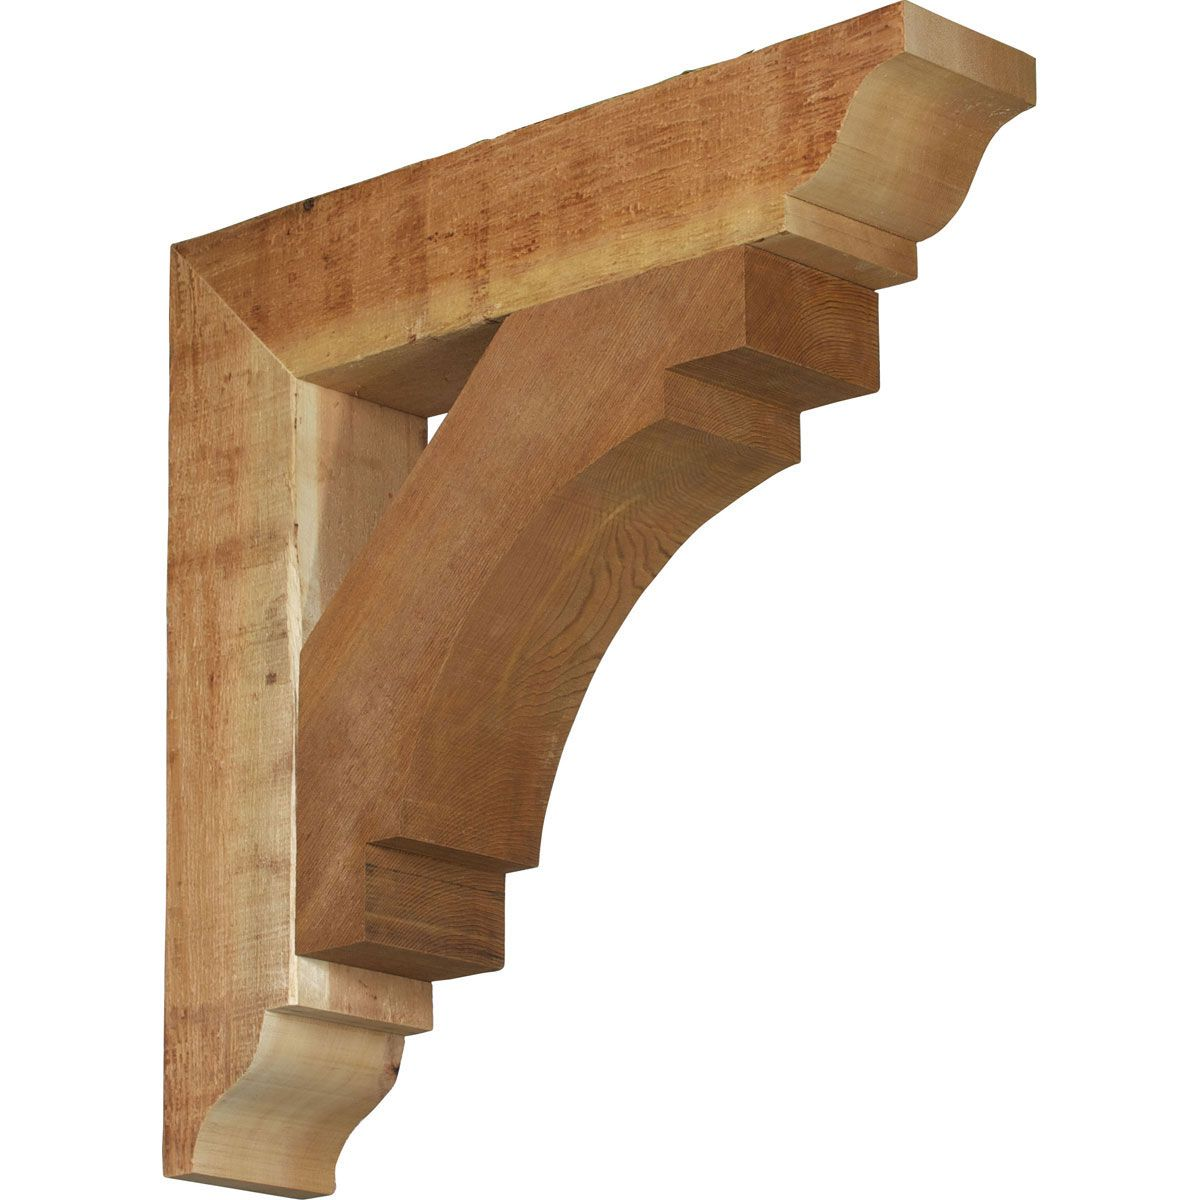 Shelf brackets decorative brackets countertop brackets for Decorative support columns